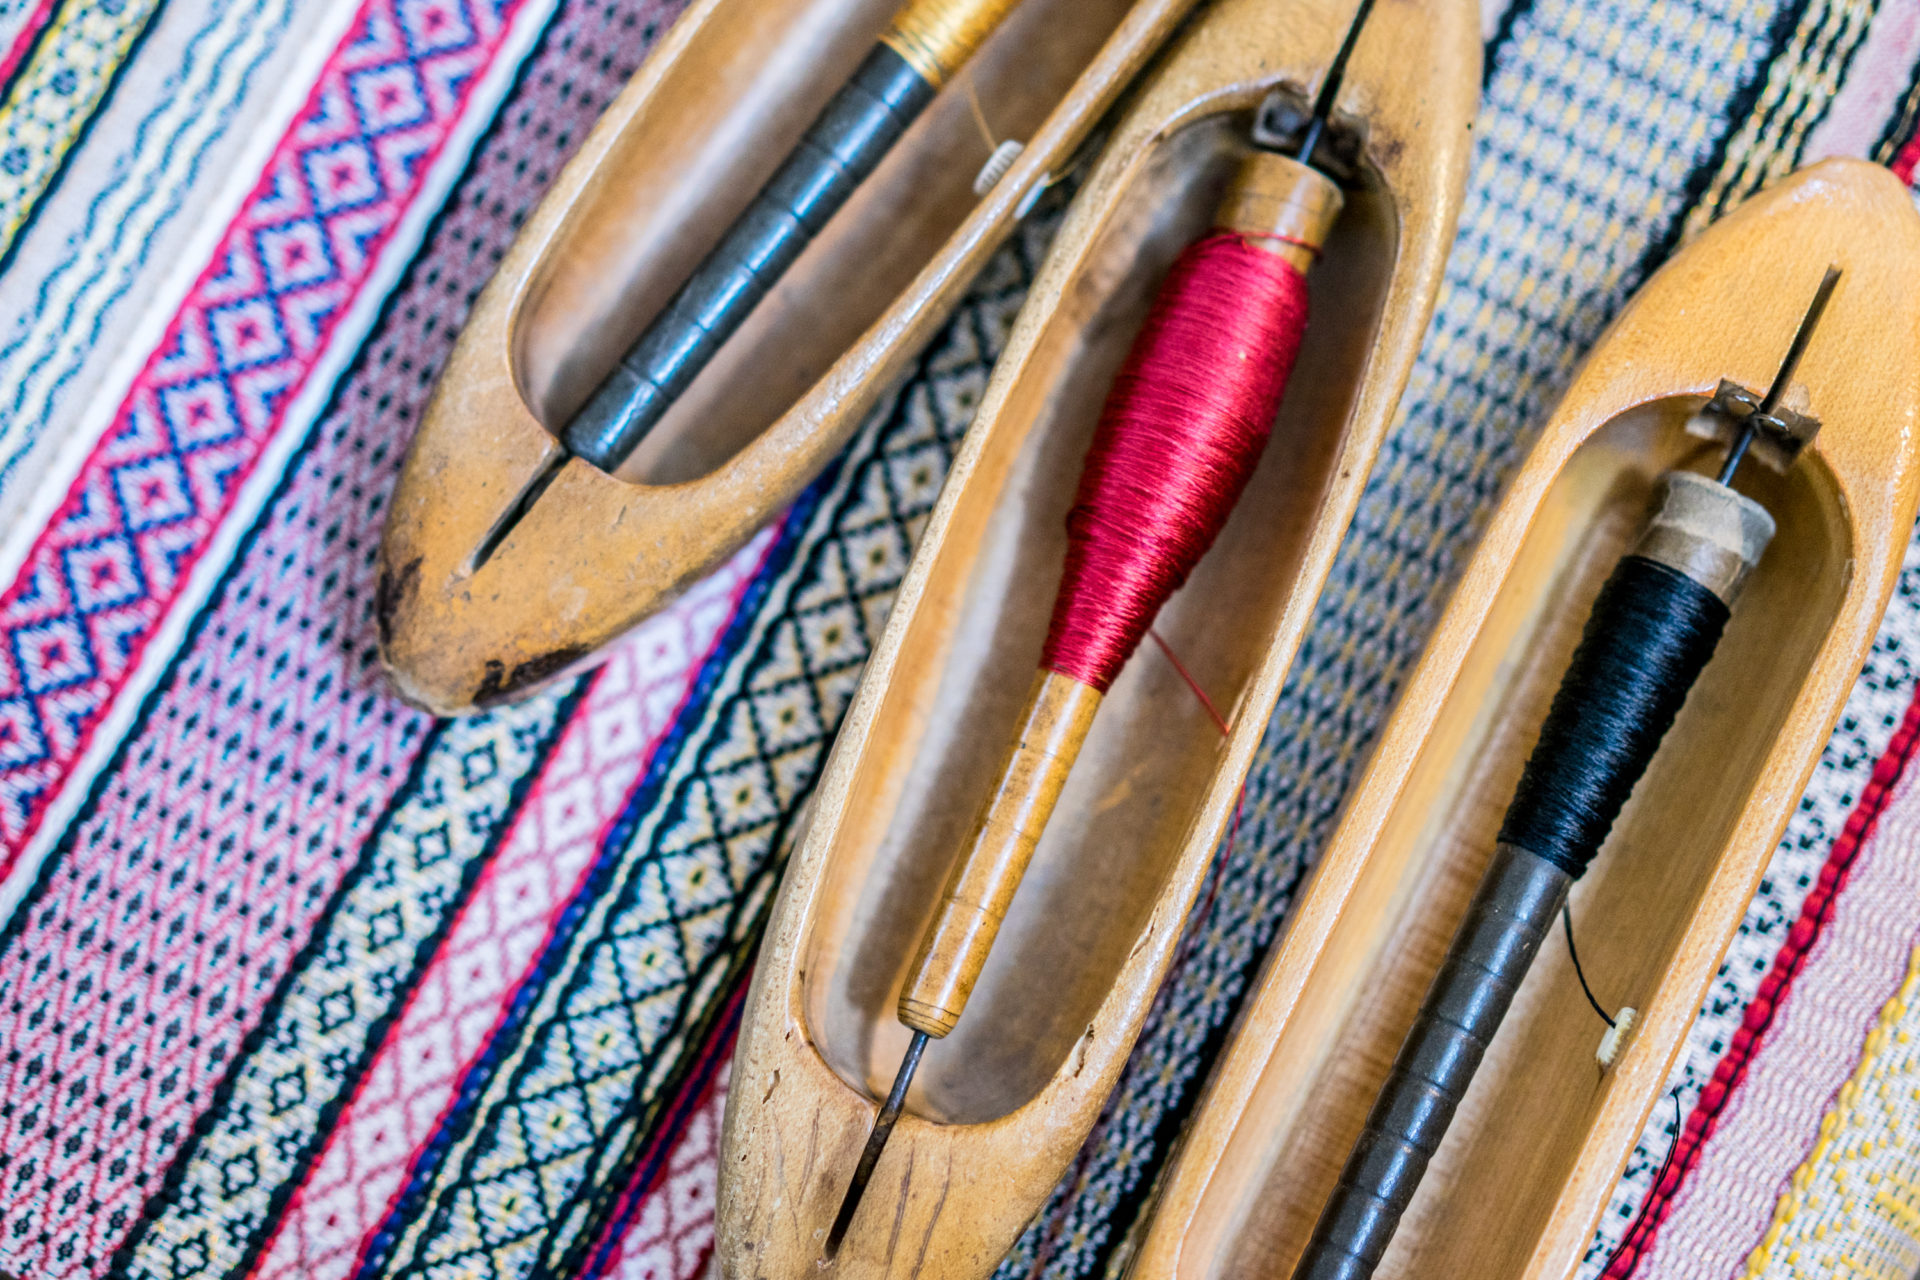 Laboratorio Giuditta Brozzetti weaving workshop in Perugia, Italy